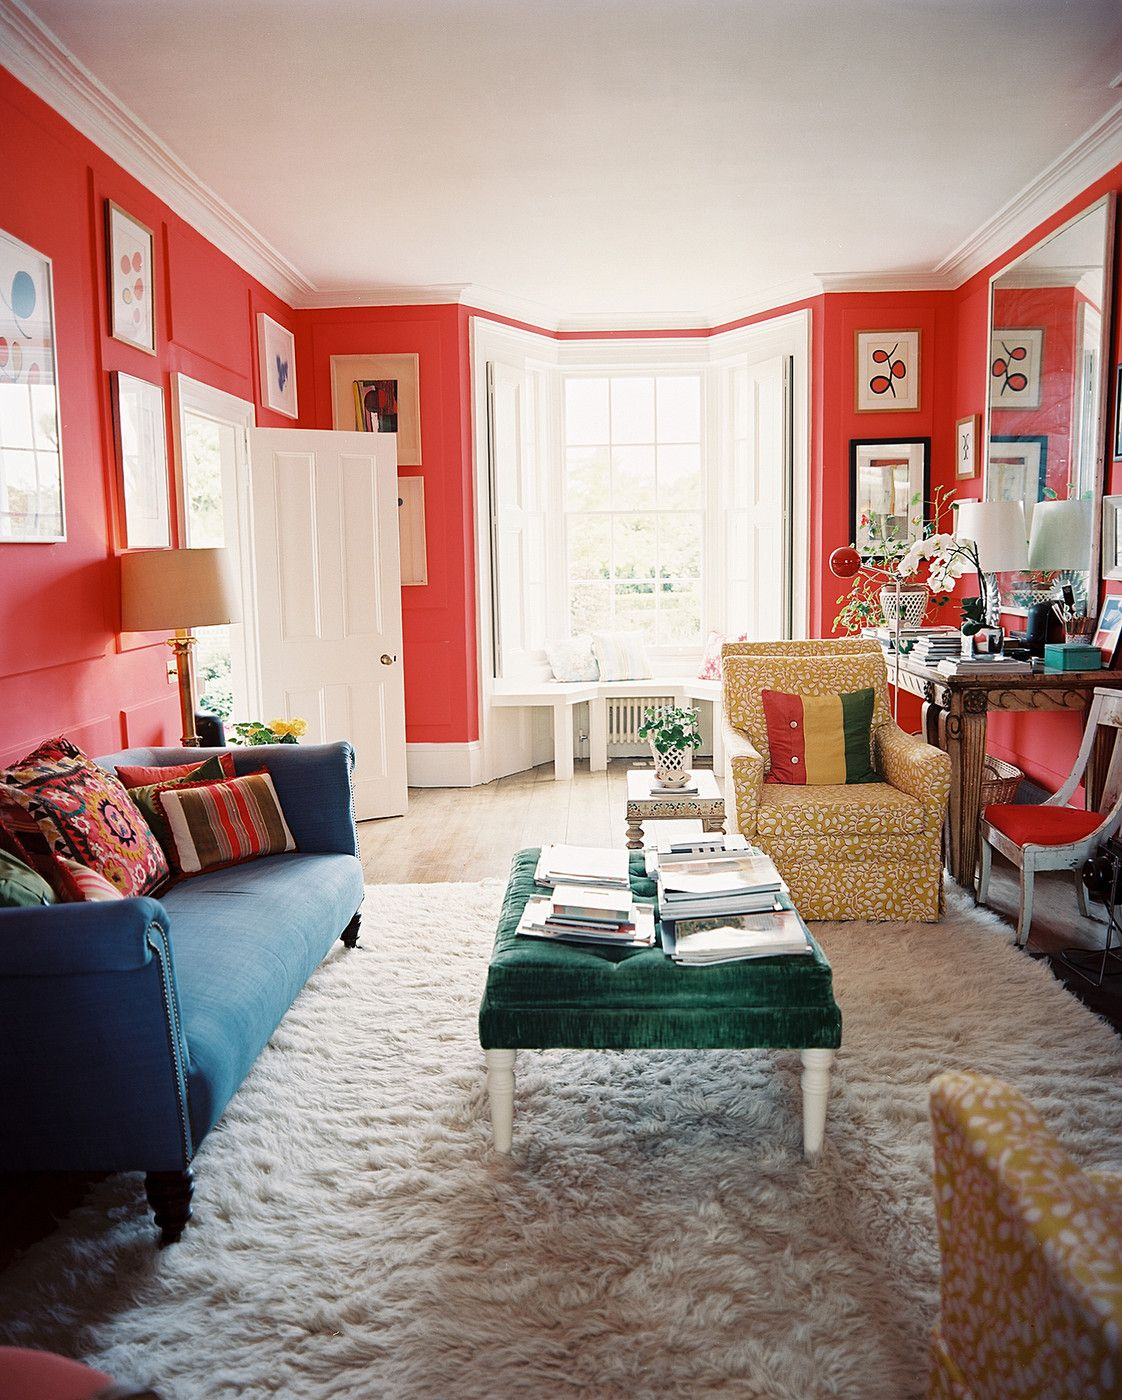 Traditional Photos Living Room Photos Living Room Red Pink Living Room Walls